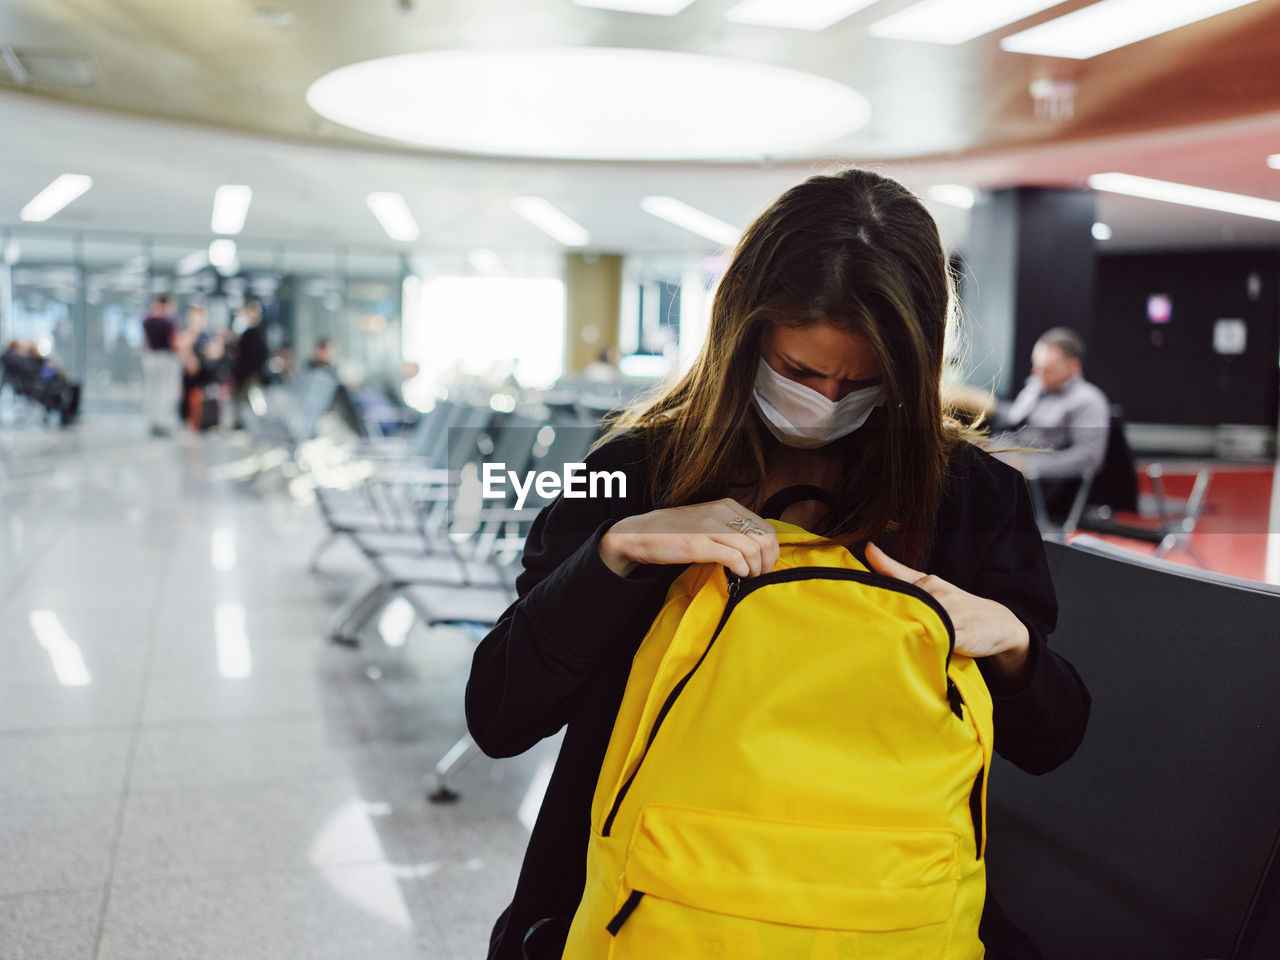 WOMAN STANDING IN AIRPORT